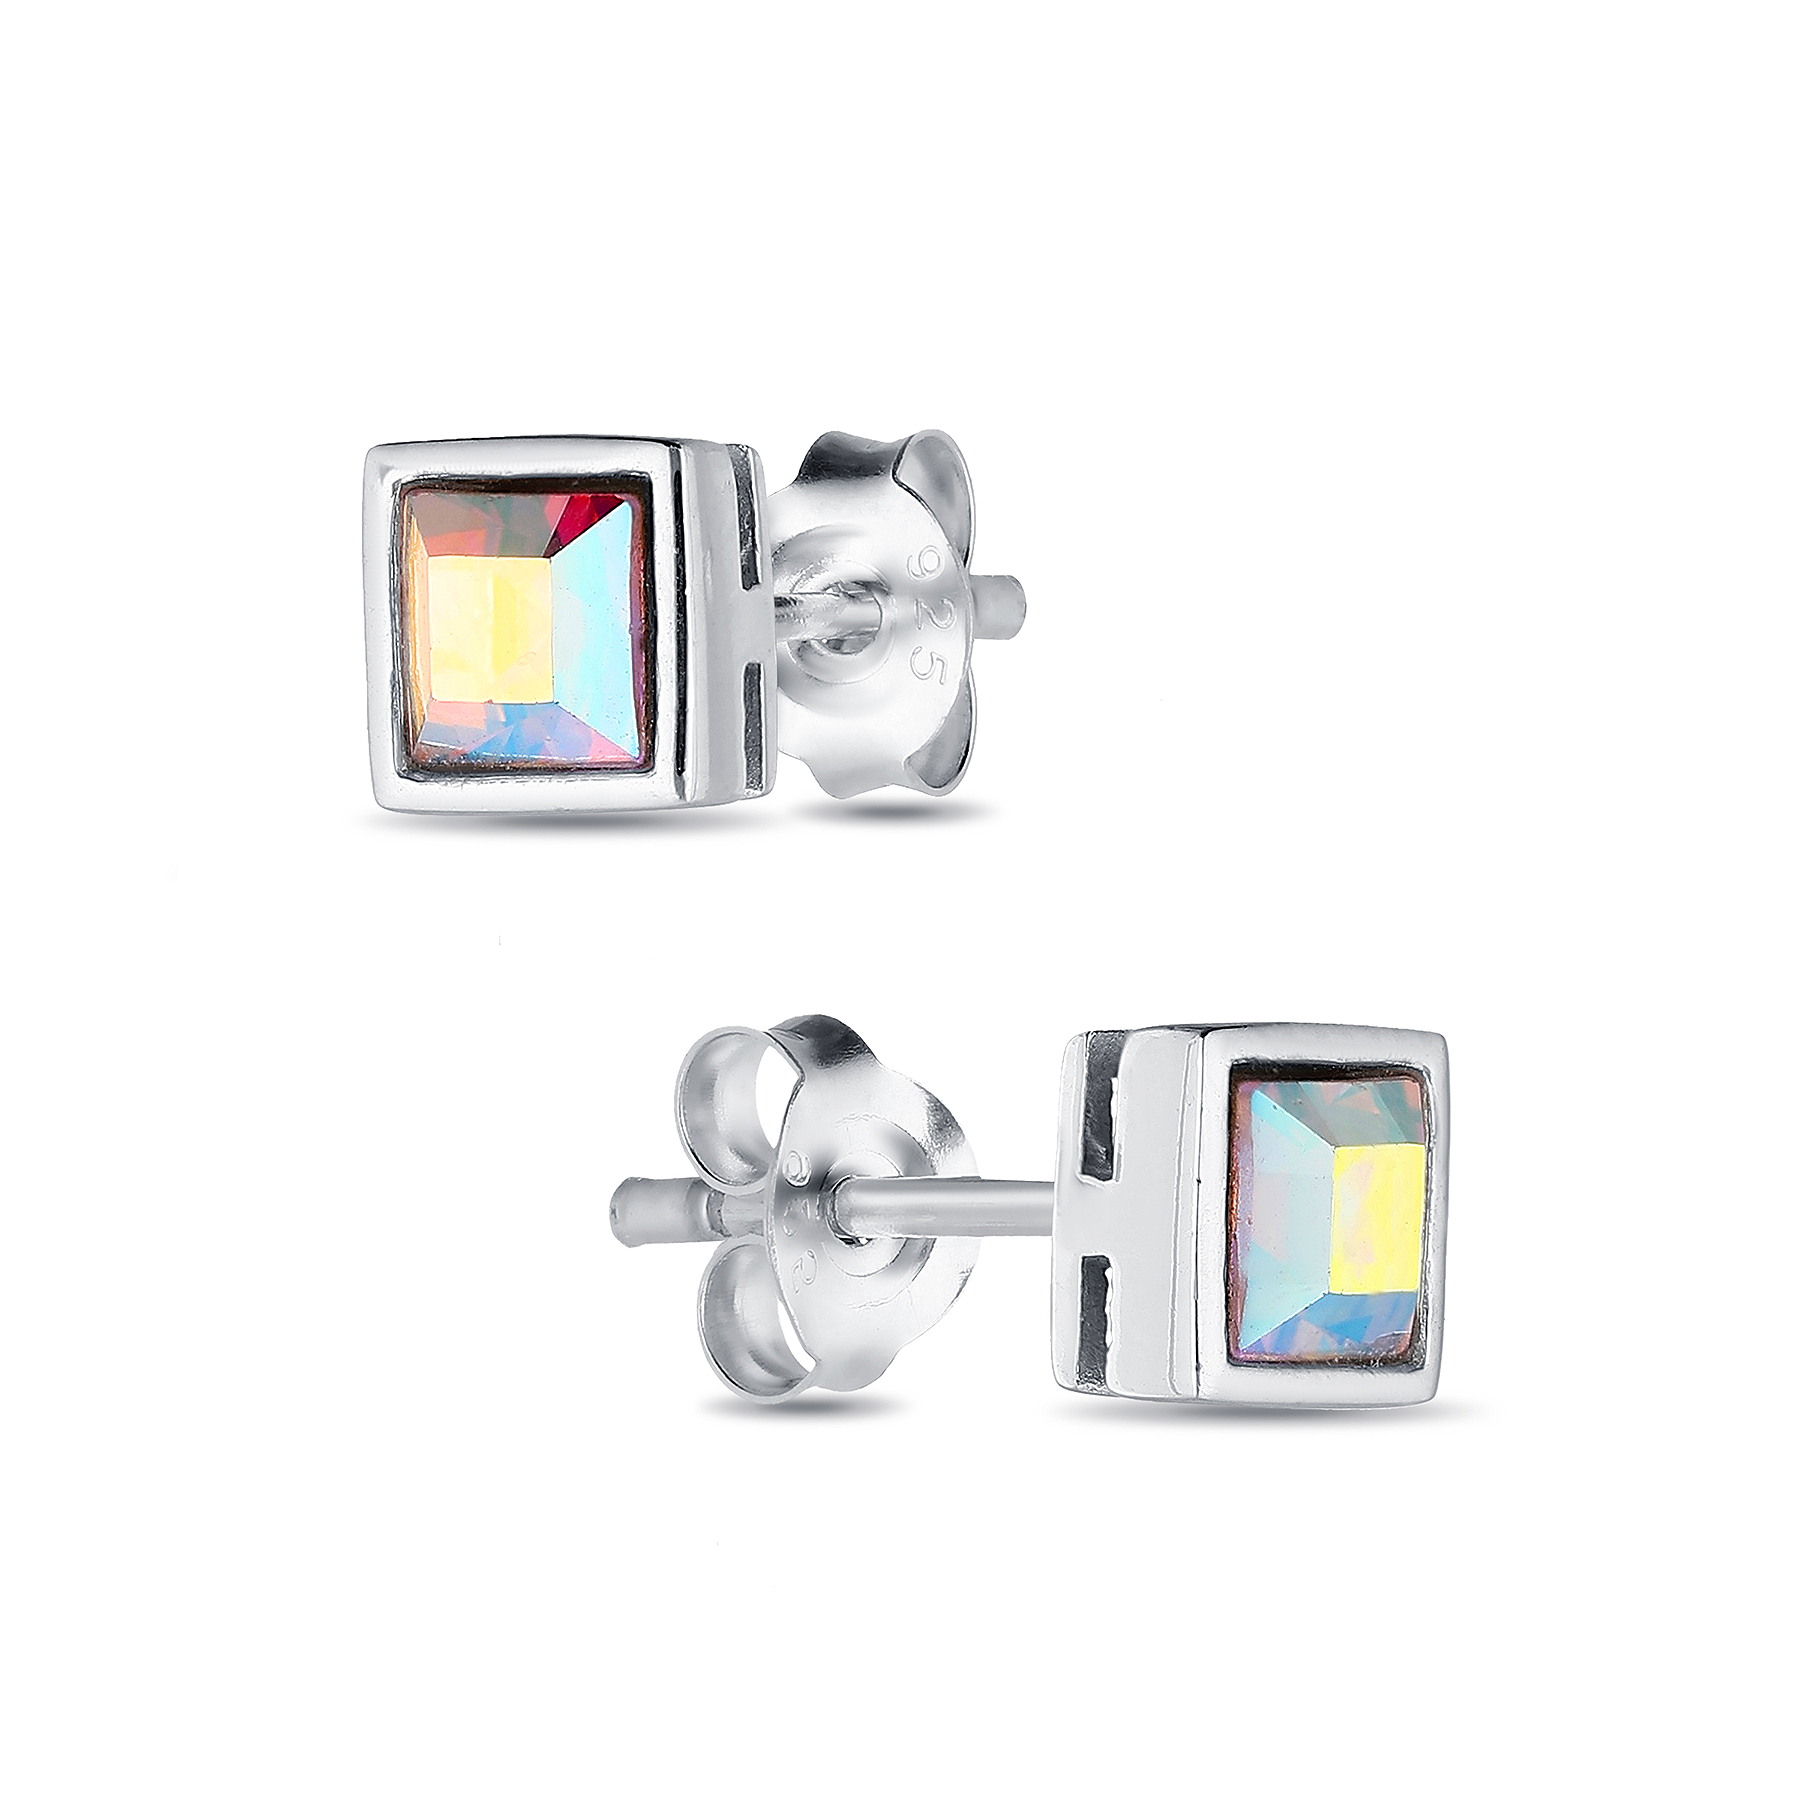 1583-157 - Sparkle by 7K - 925 Sterling Silver Square Push-Back Earrings Decorated With Verifiable Authentic Swarovski Crystals